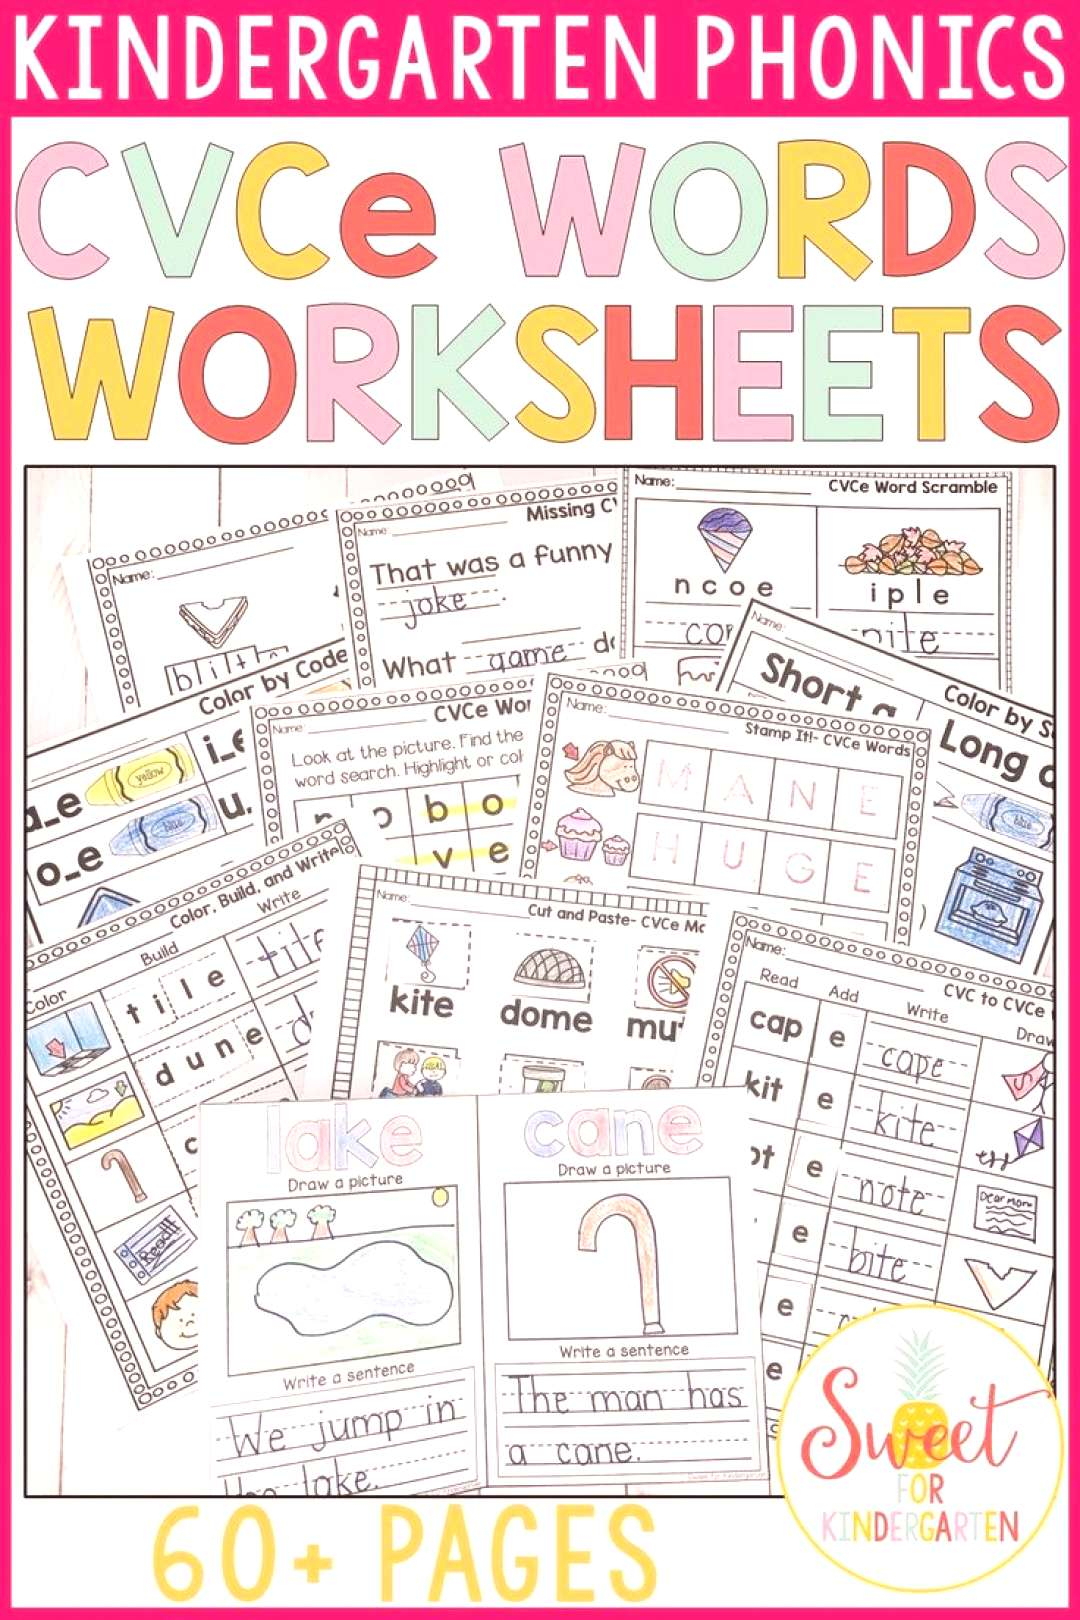 CVCe Words Worksheets All the worksheets your students need to practice and learn CVCe words. Use t